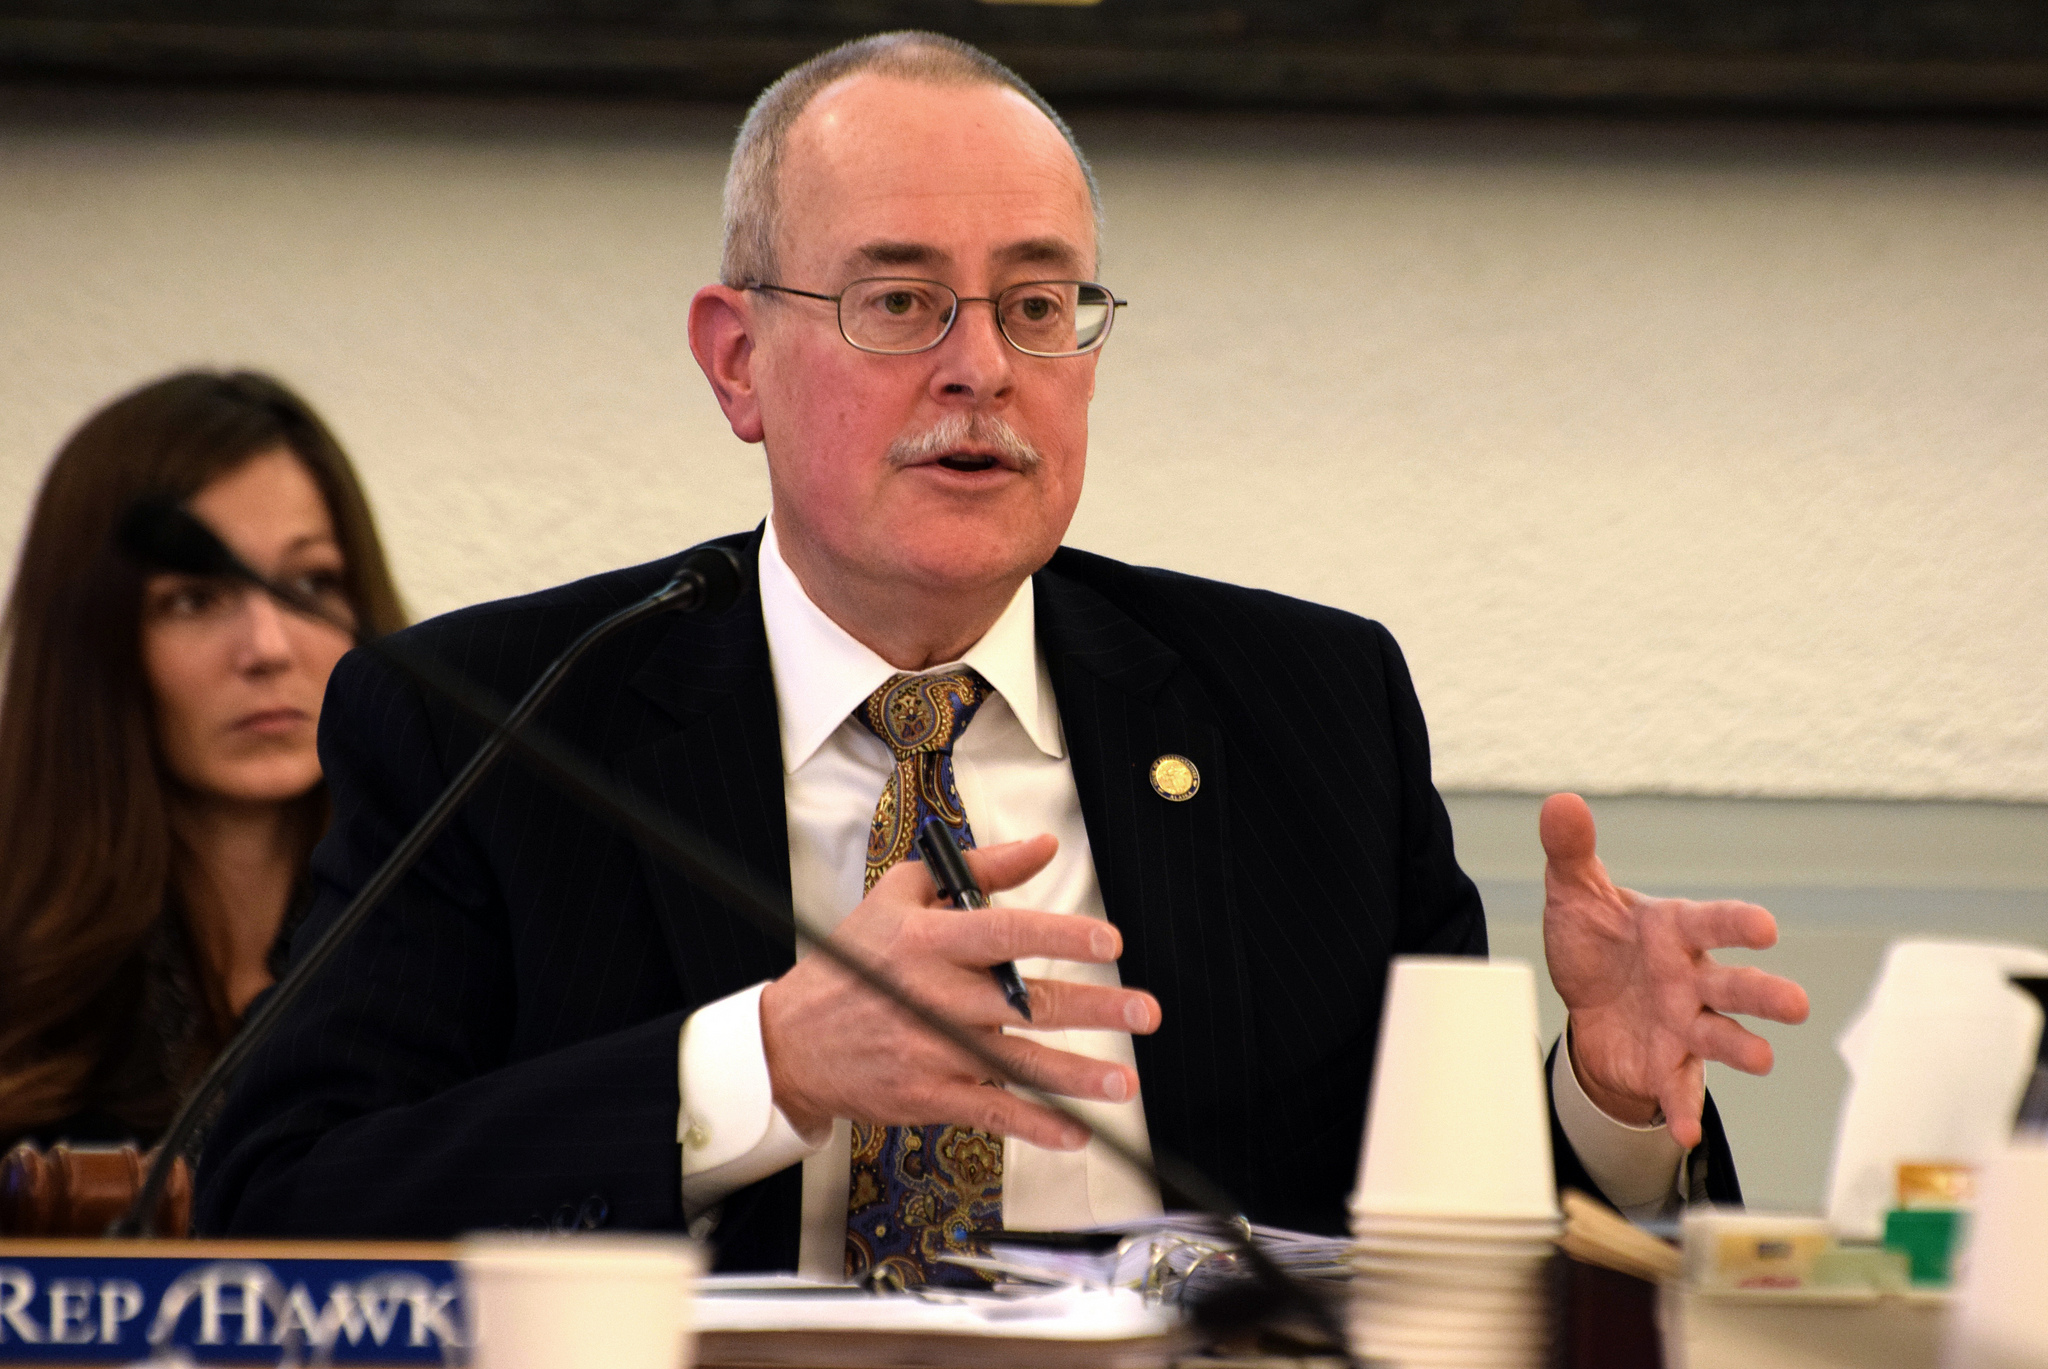 Rep. Mike Hawker, Chair of the Legislative Budget & Audit Committee, on Feb. 12, 2015. (Photo by Skip Gray/360 North)